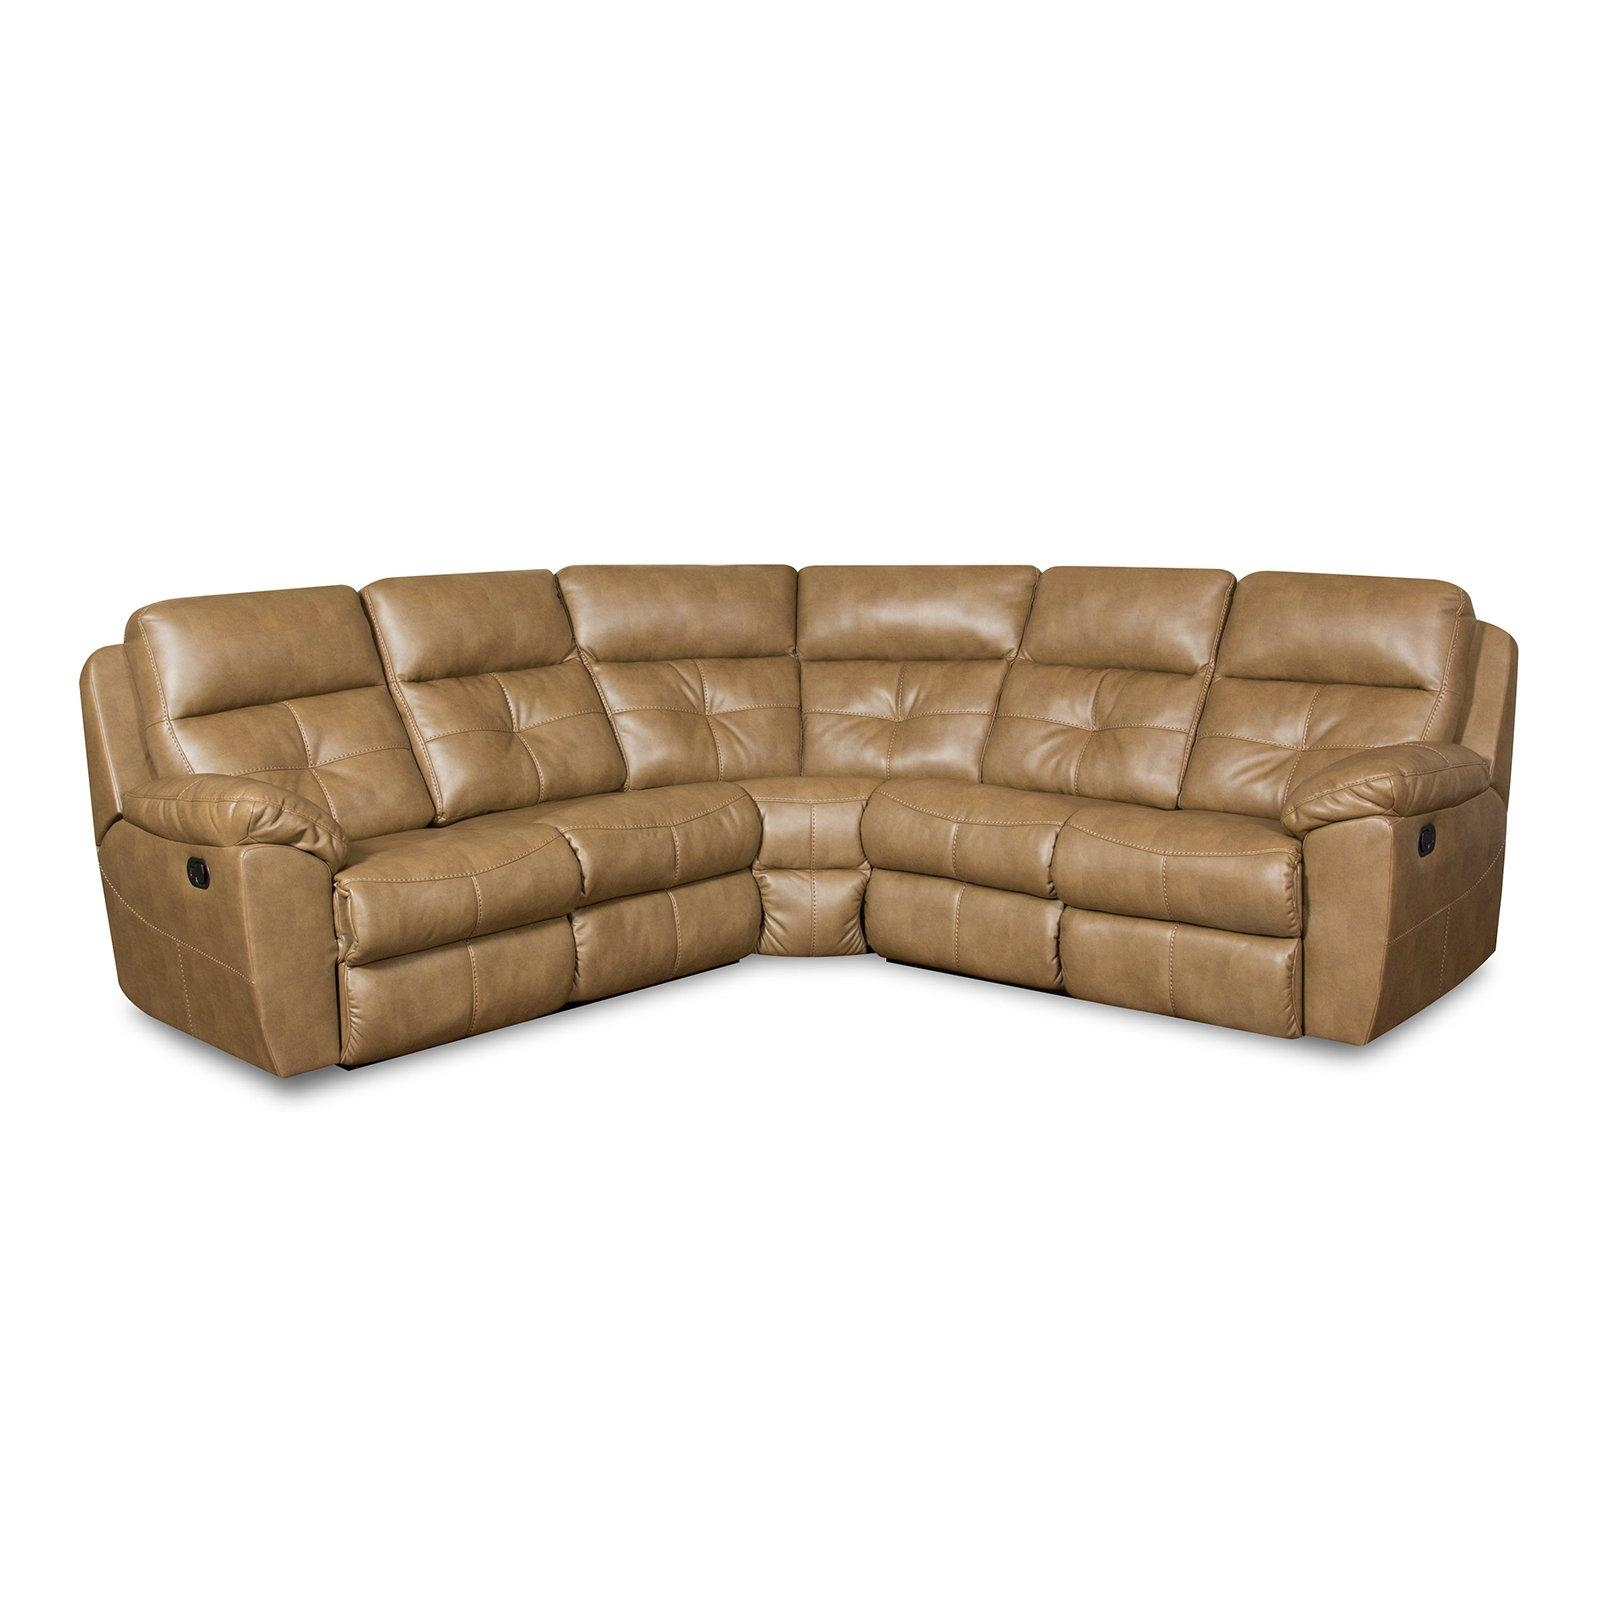 Simmons Upholstery Bradford Beautyrest Motion Sectional | Hayneedle Intended For Simmons Sectional Sofas (Image 13 of 20)